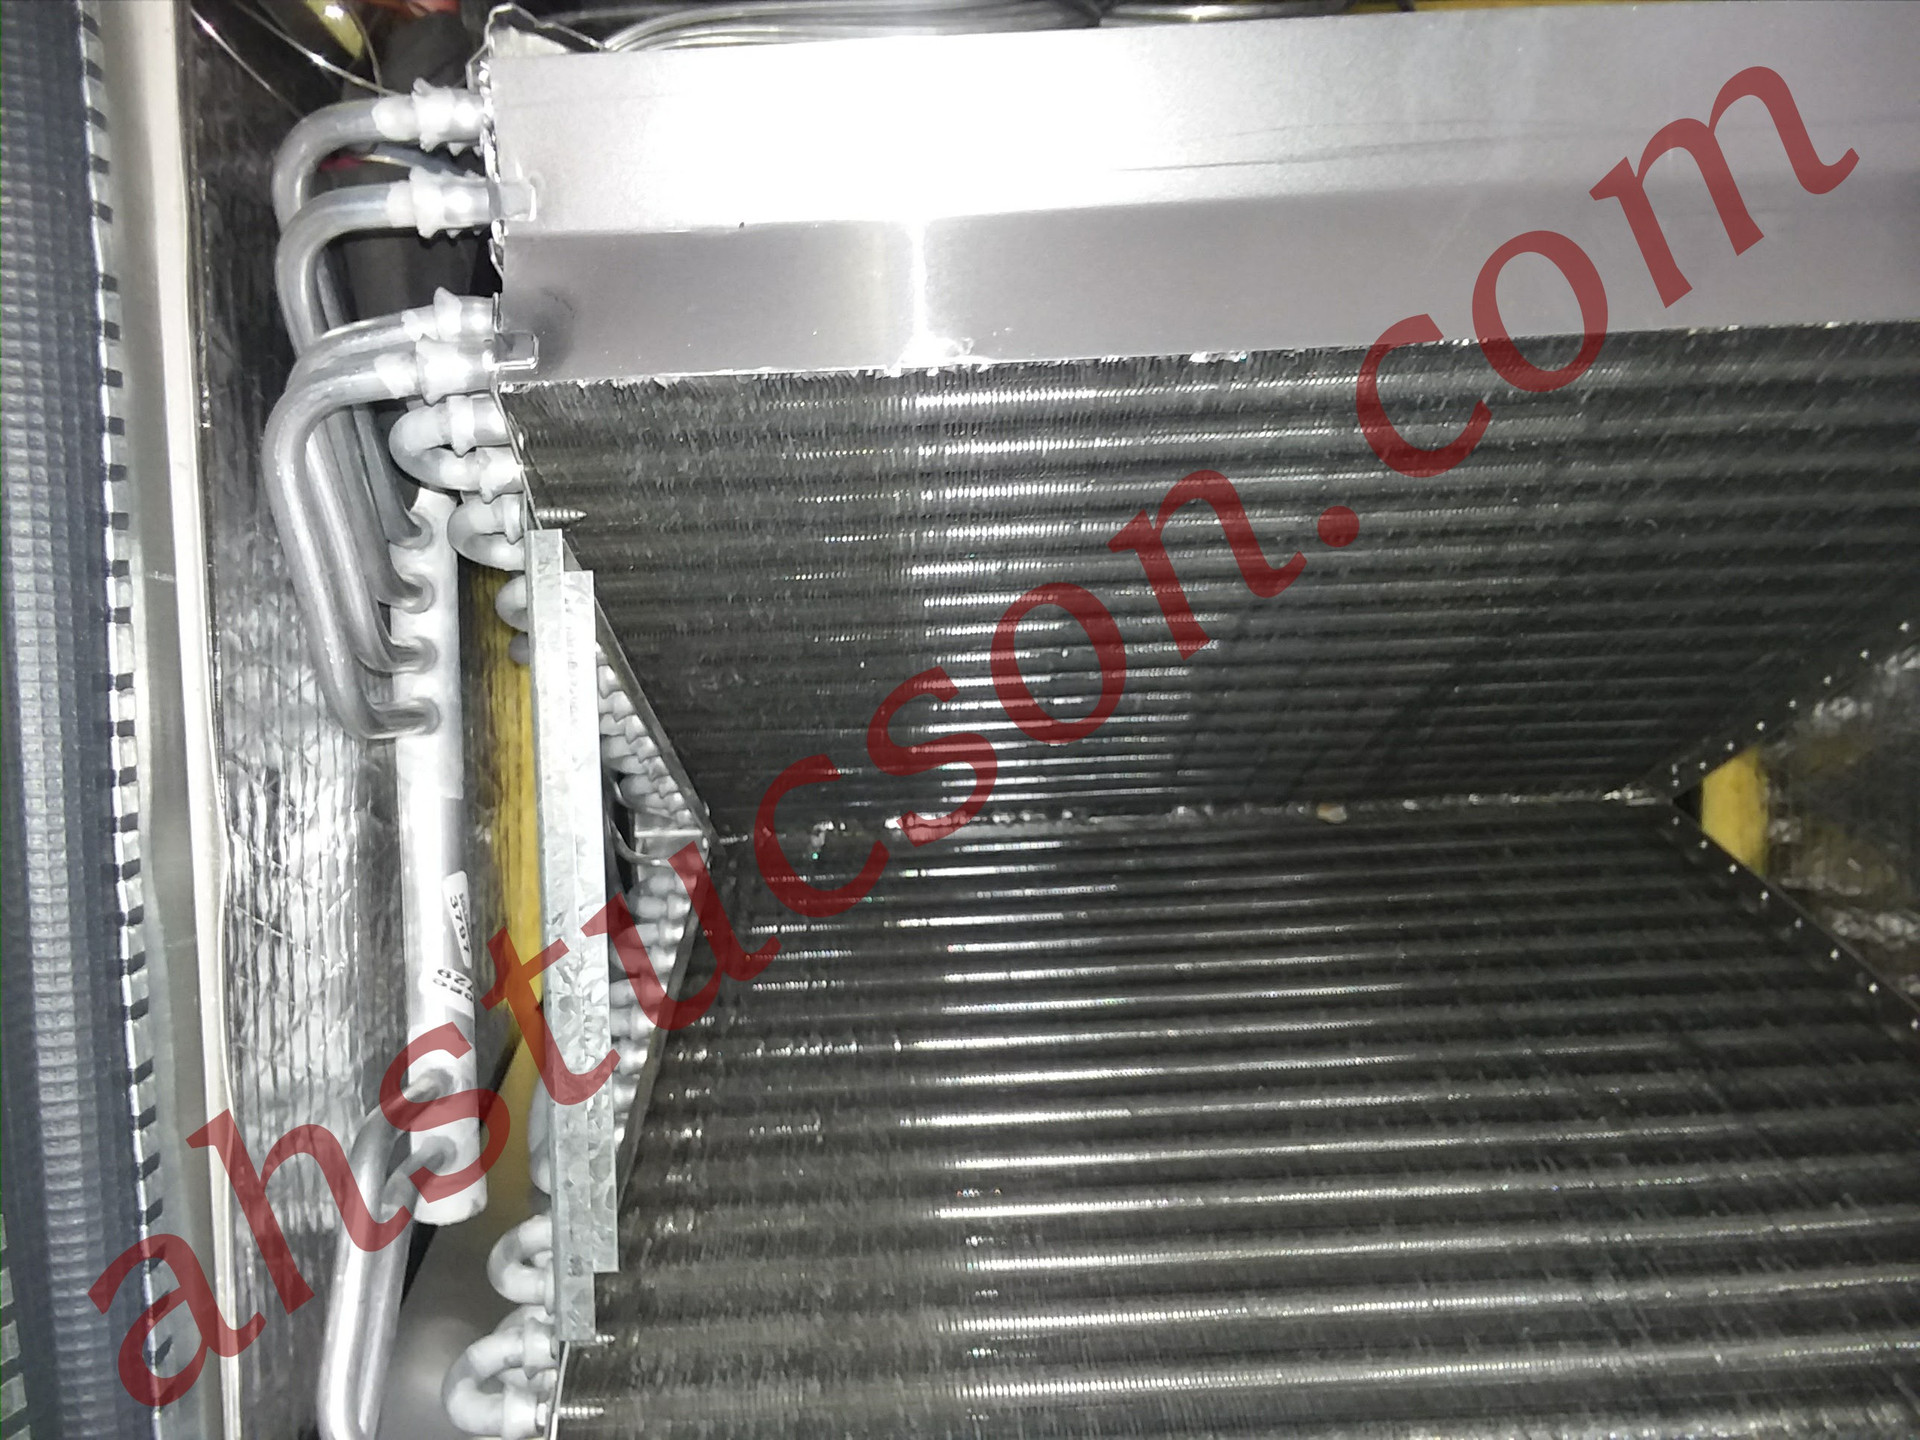 air-duct-cleaning-20171128_130846.jpg